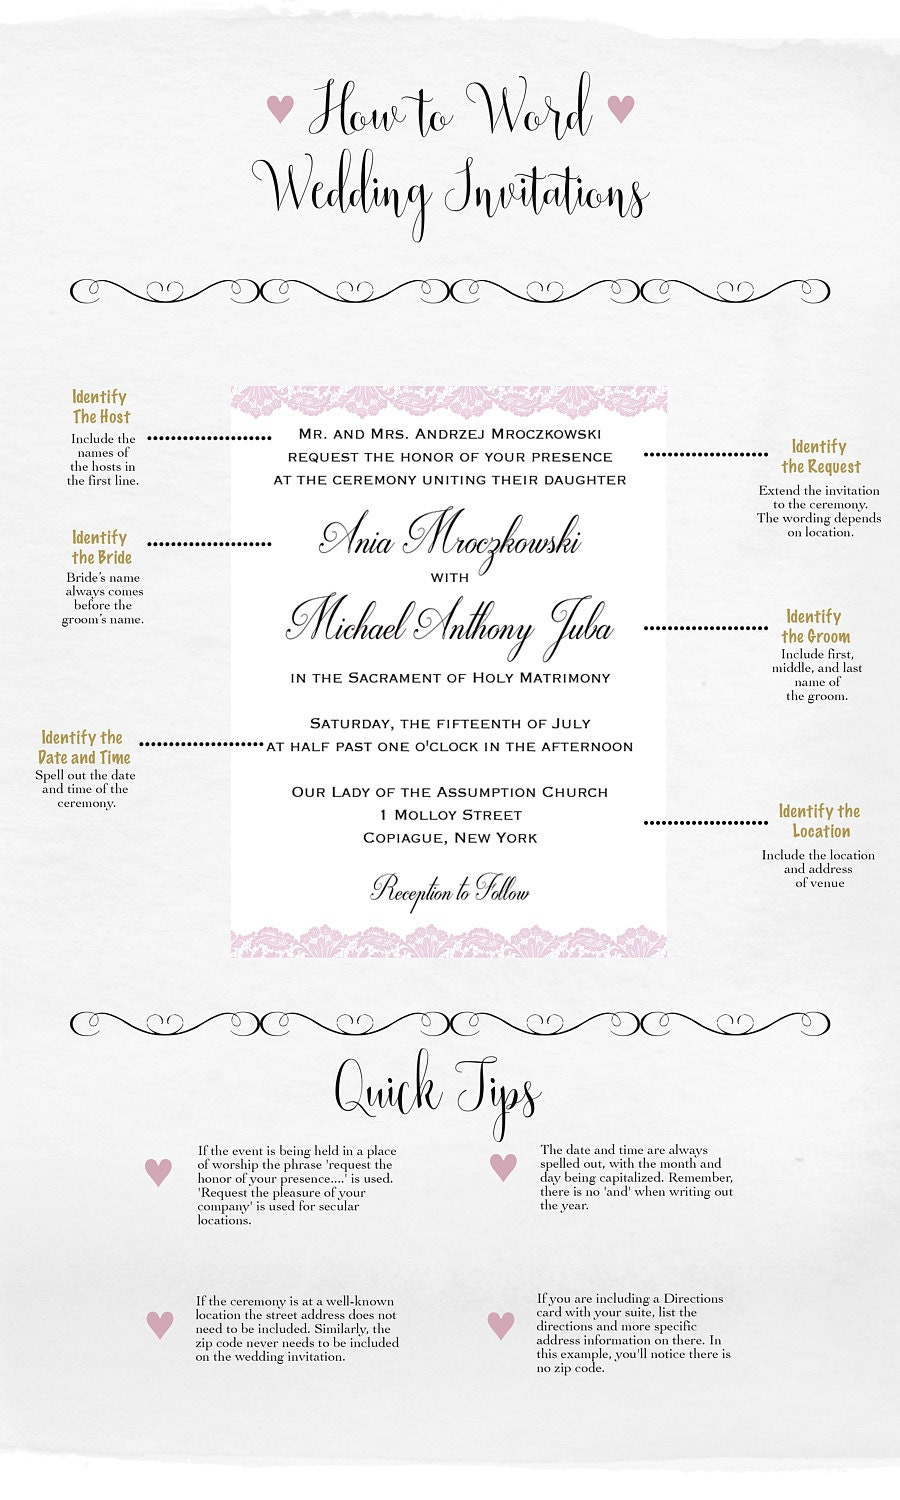 5 Basics To Wording Wedding Invitations